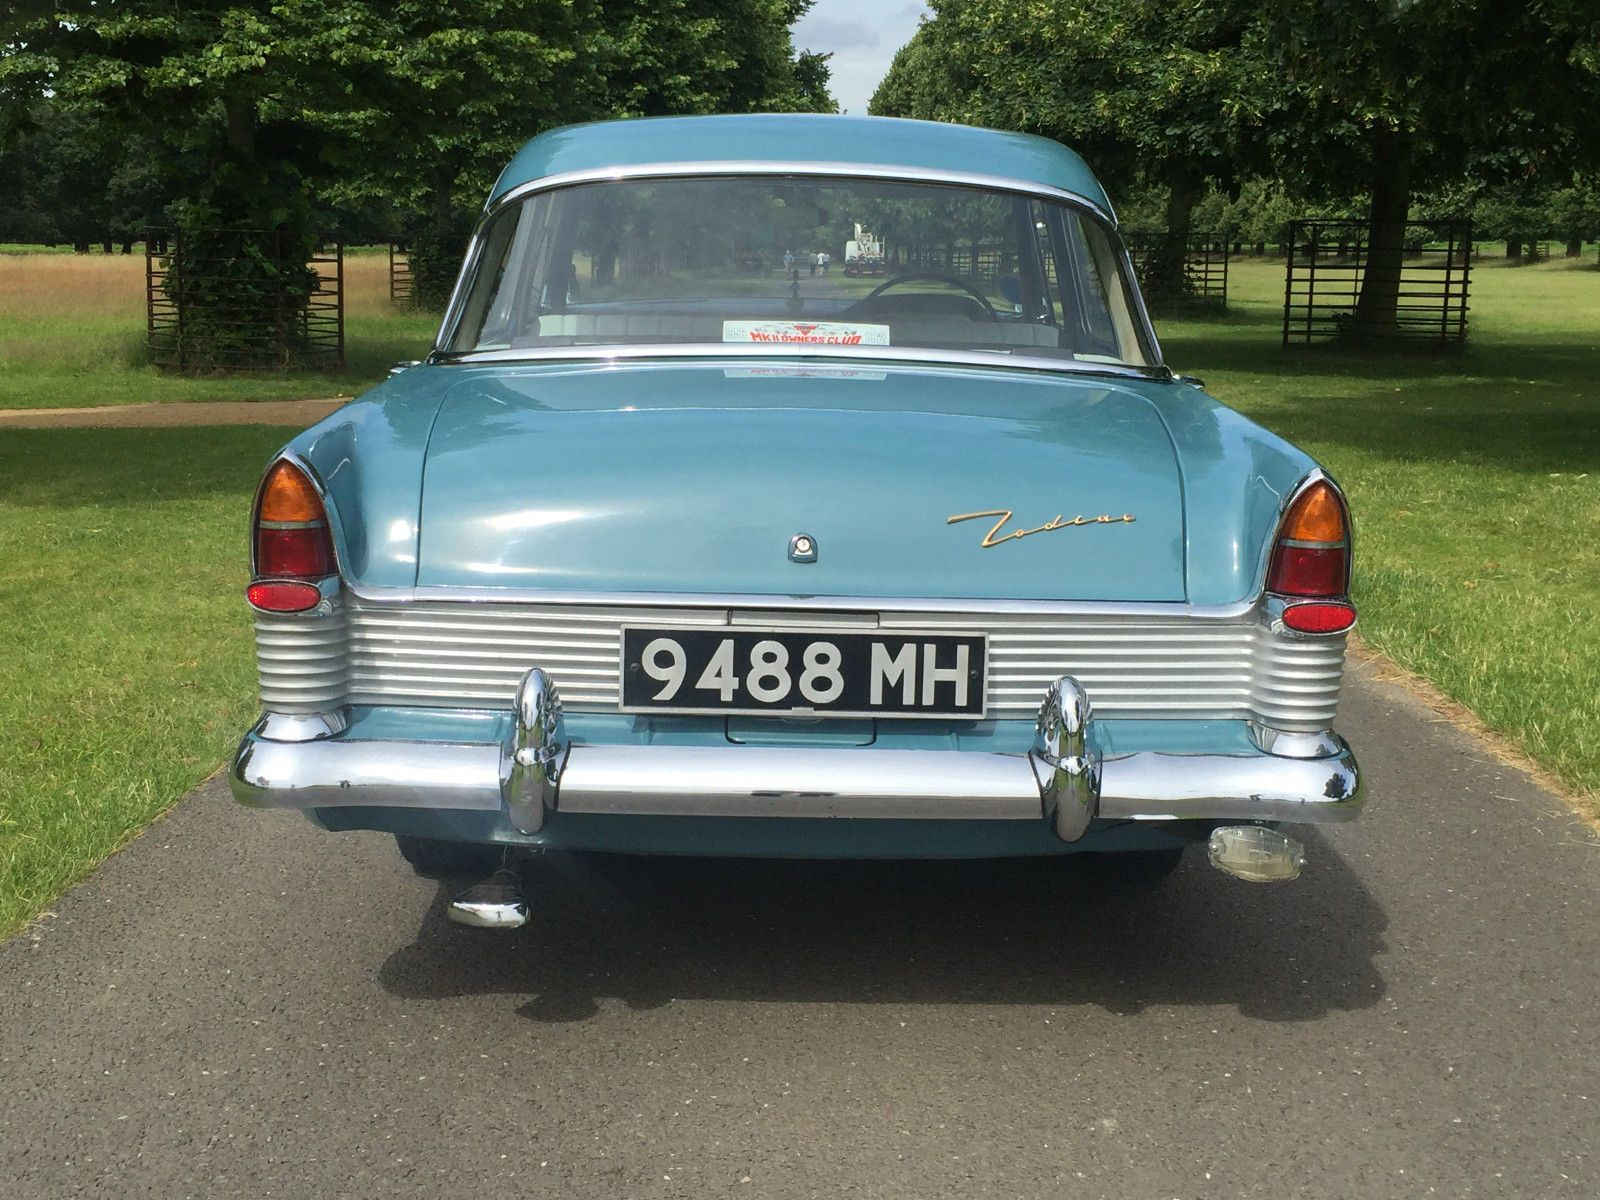 Ford Zodiac Mk2 Lowline Ebay In 2020 Classic Cars British